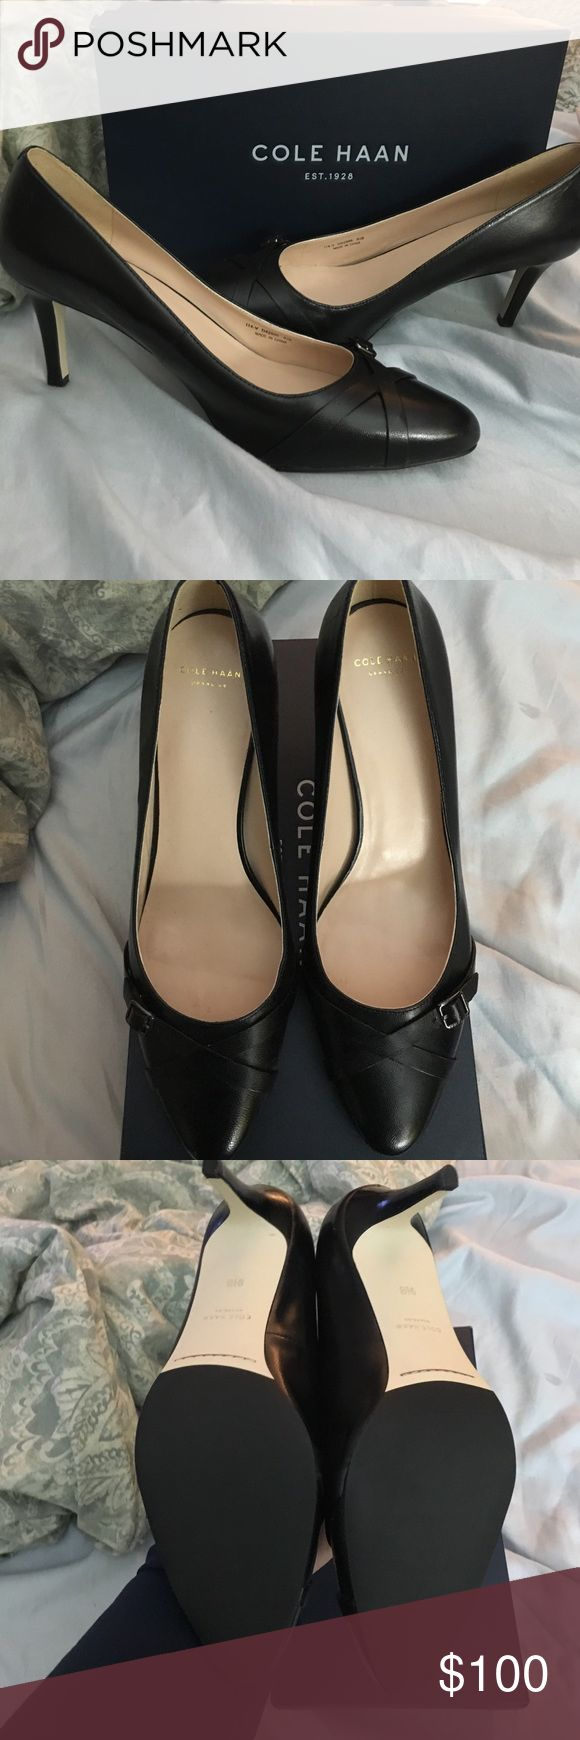 "NWT Cole Haan Air Lena Pump NWT Cole Haan Air Lena Pump. Black leather, approx. 3"" heel. Very comfortable with Nike Air technology! Cole Haan Shoes Heels"